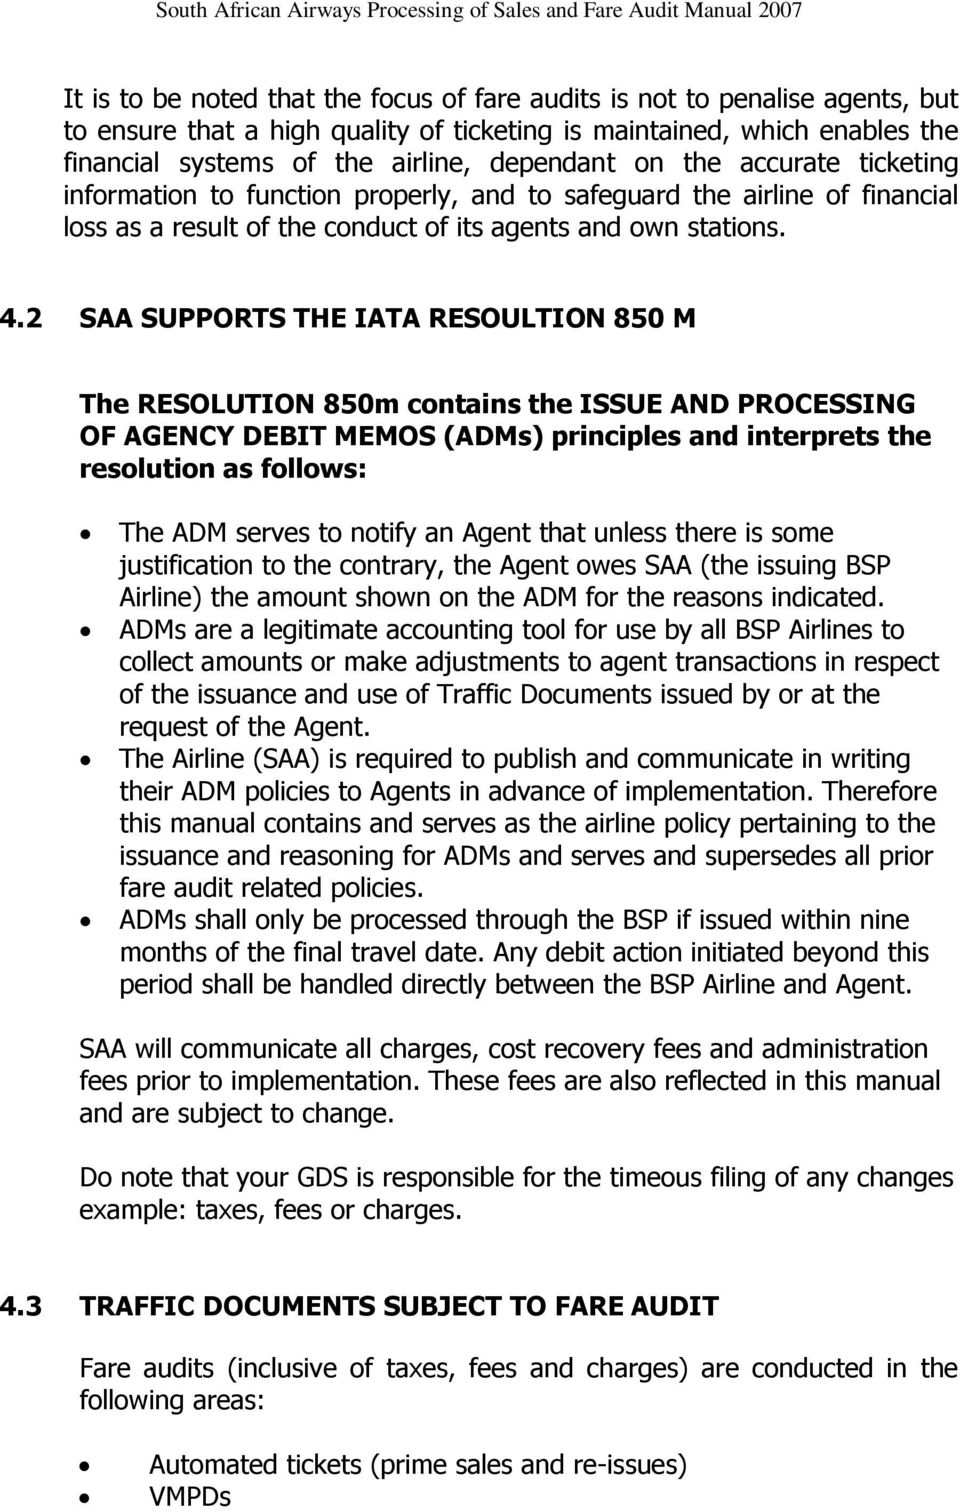 2 SAA SUPPORTS THE IATA RESOULTION 850 M The RESOLUTION 850m contains the ISSUE AND PROCESSING OF AGENCY DEBIT MEMOS (ADMs) principles and interprets the resolution as follows: The ADM serves to